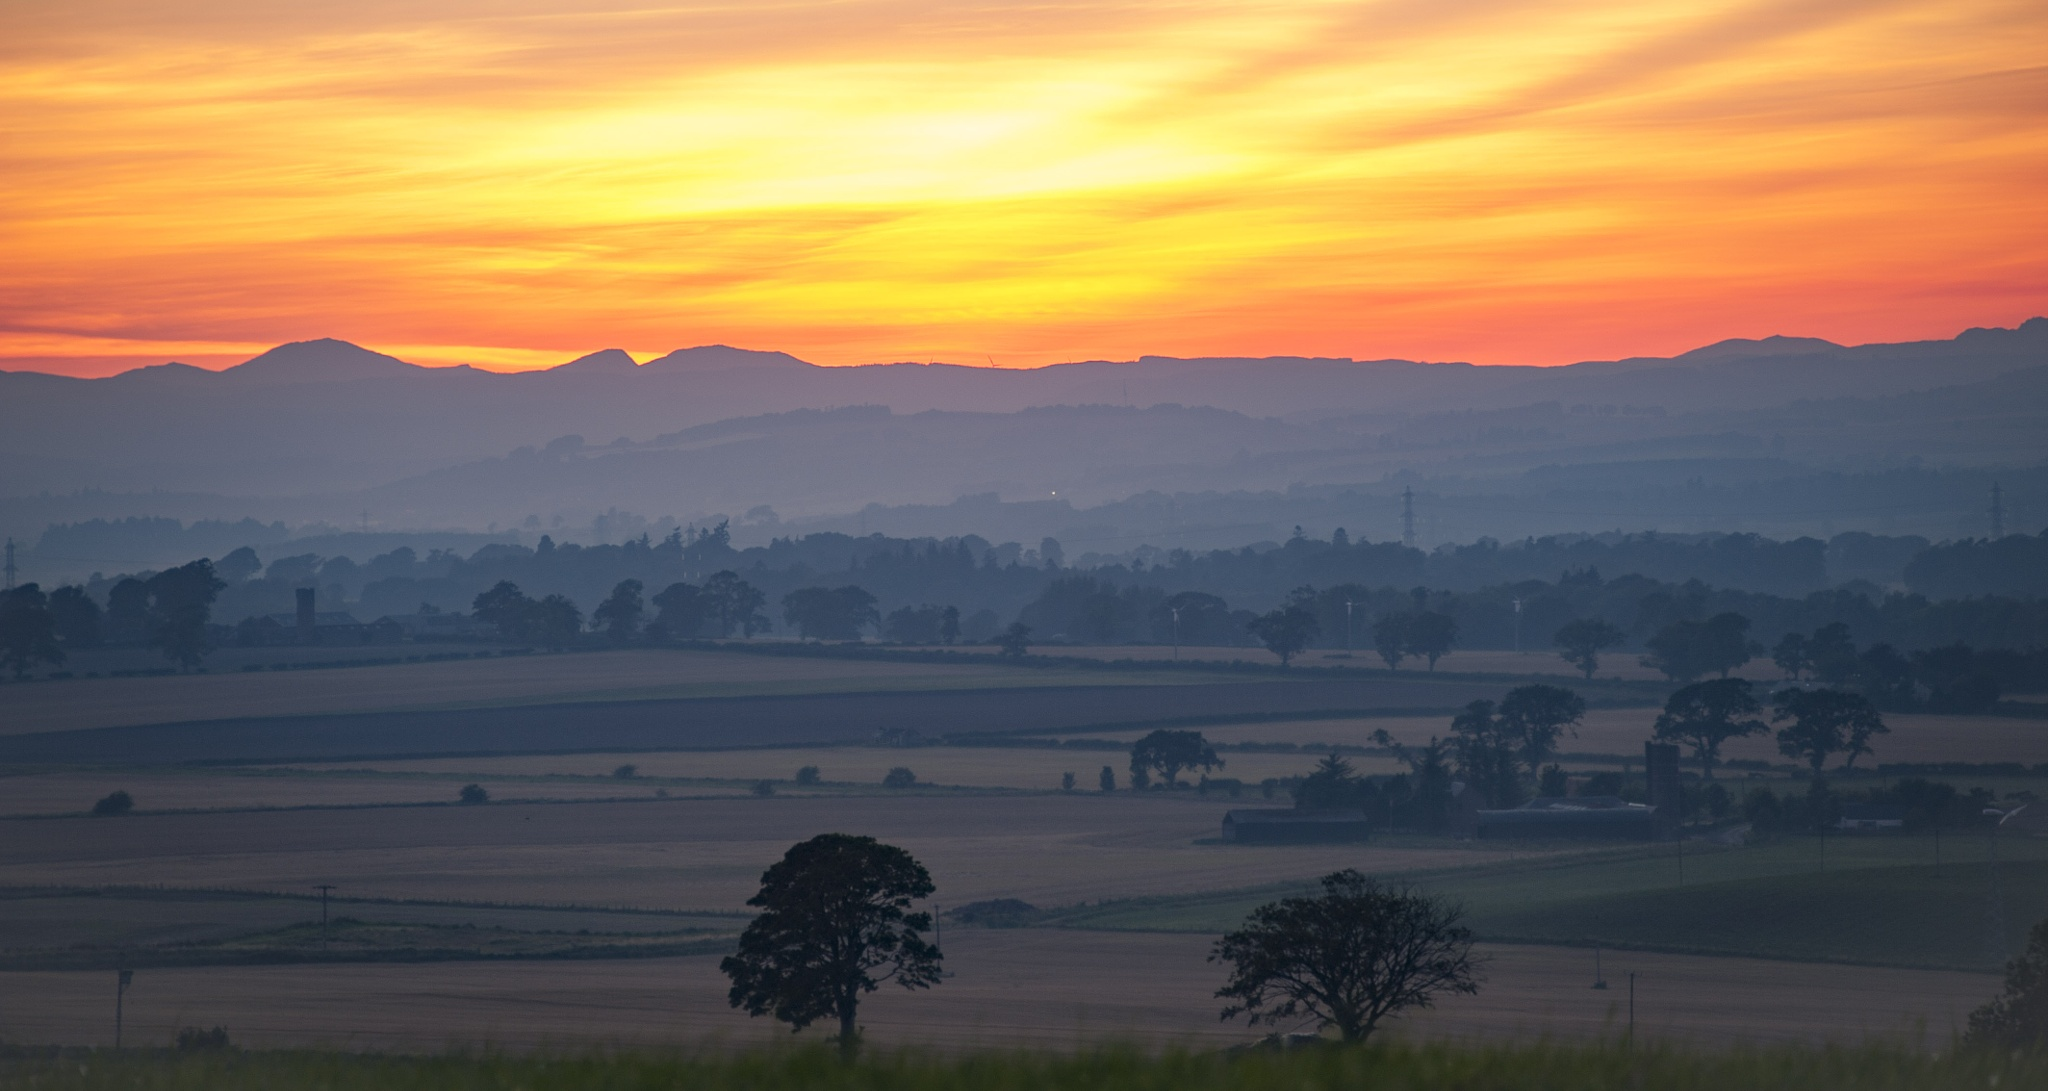 Strathmore Valley at Sunset by Stormrider-uk